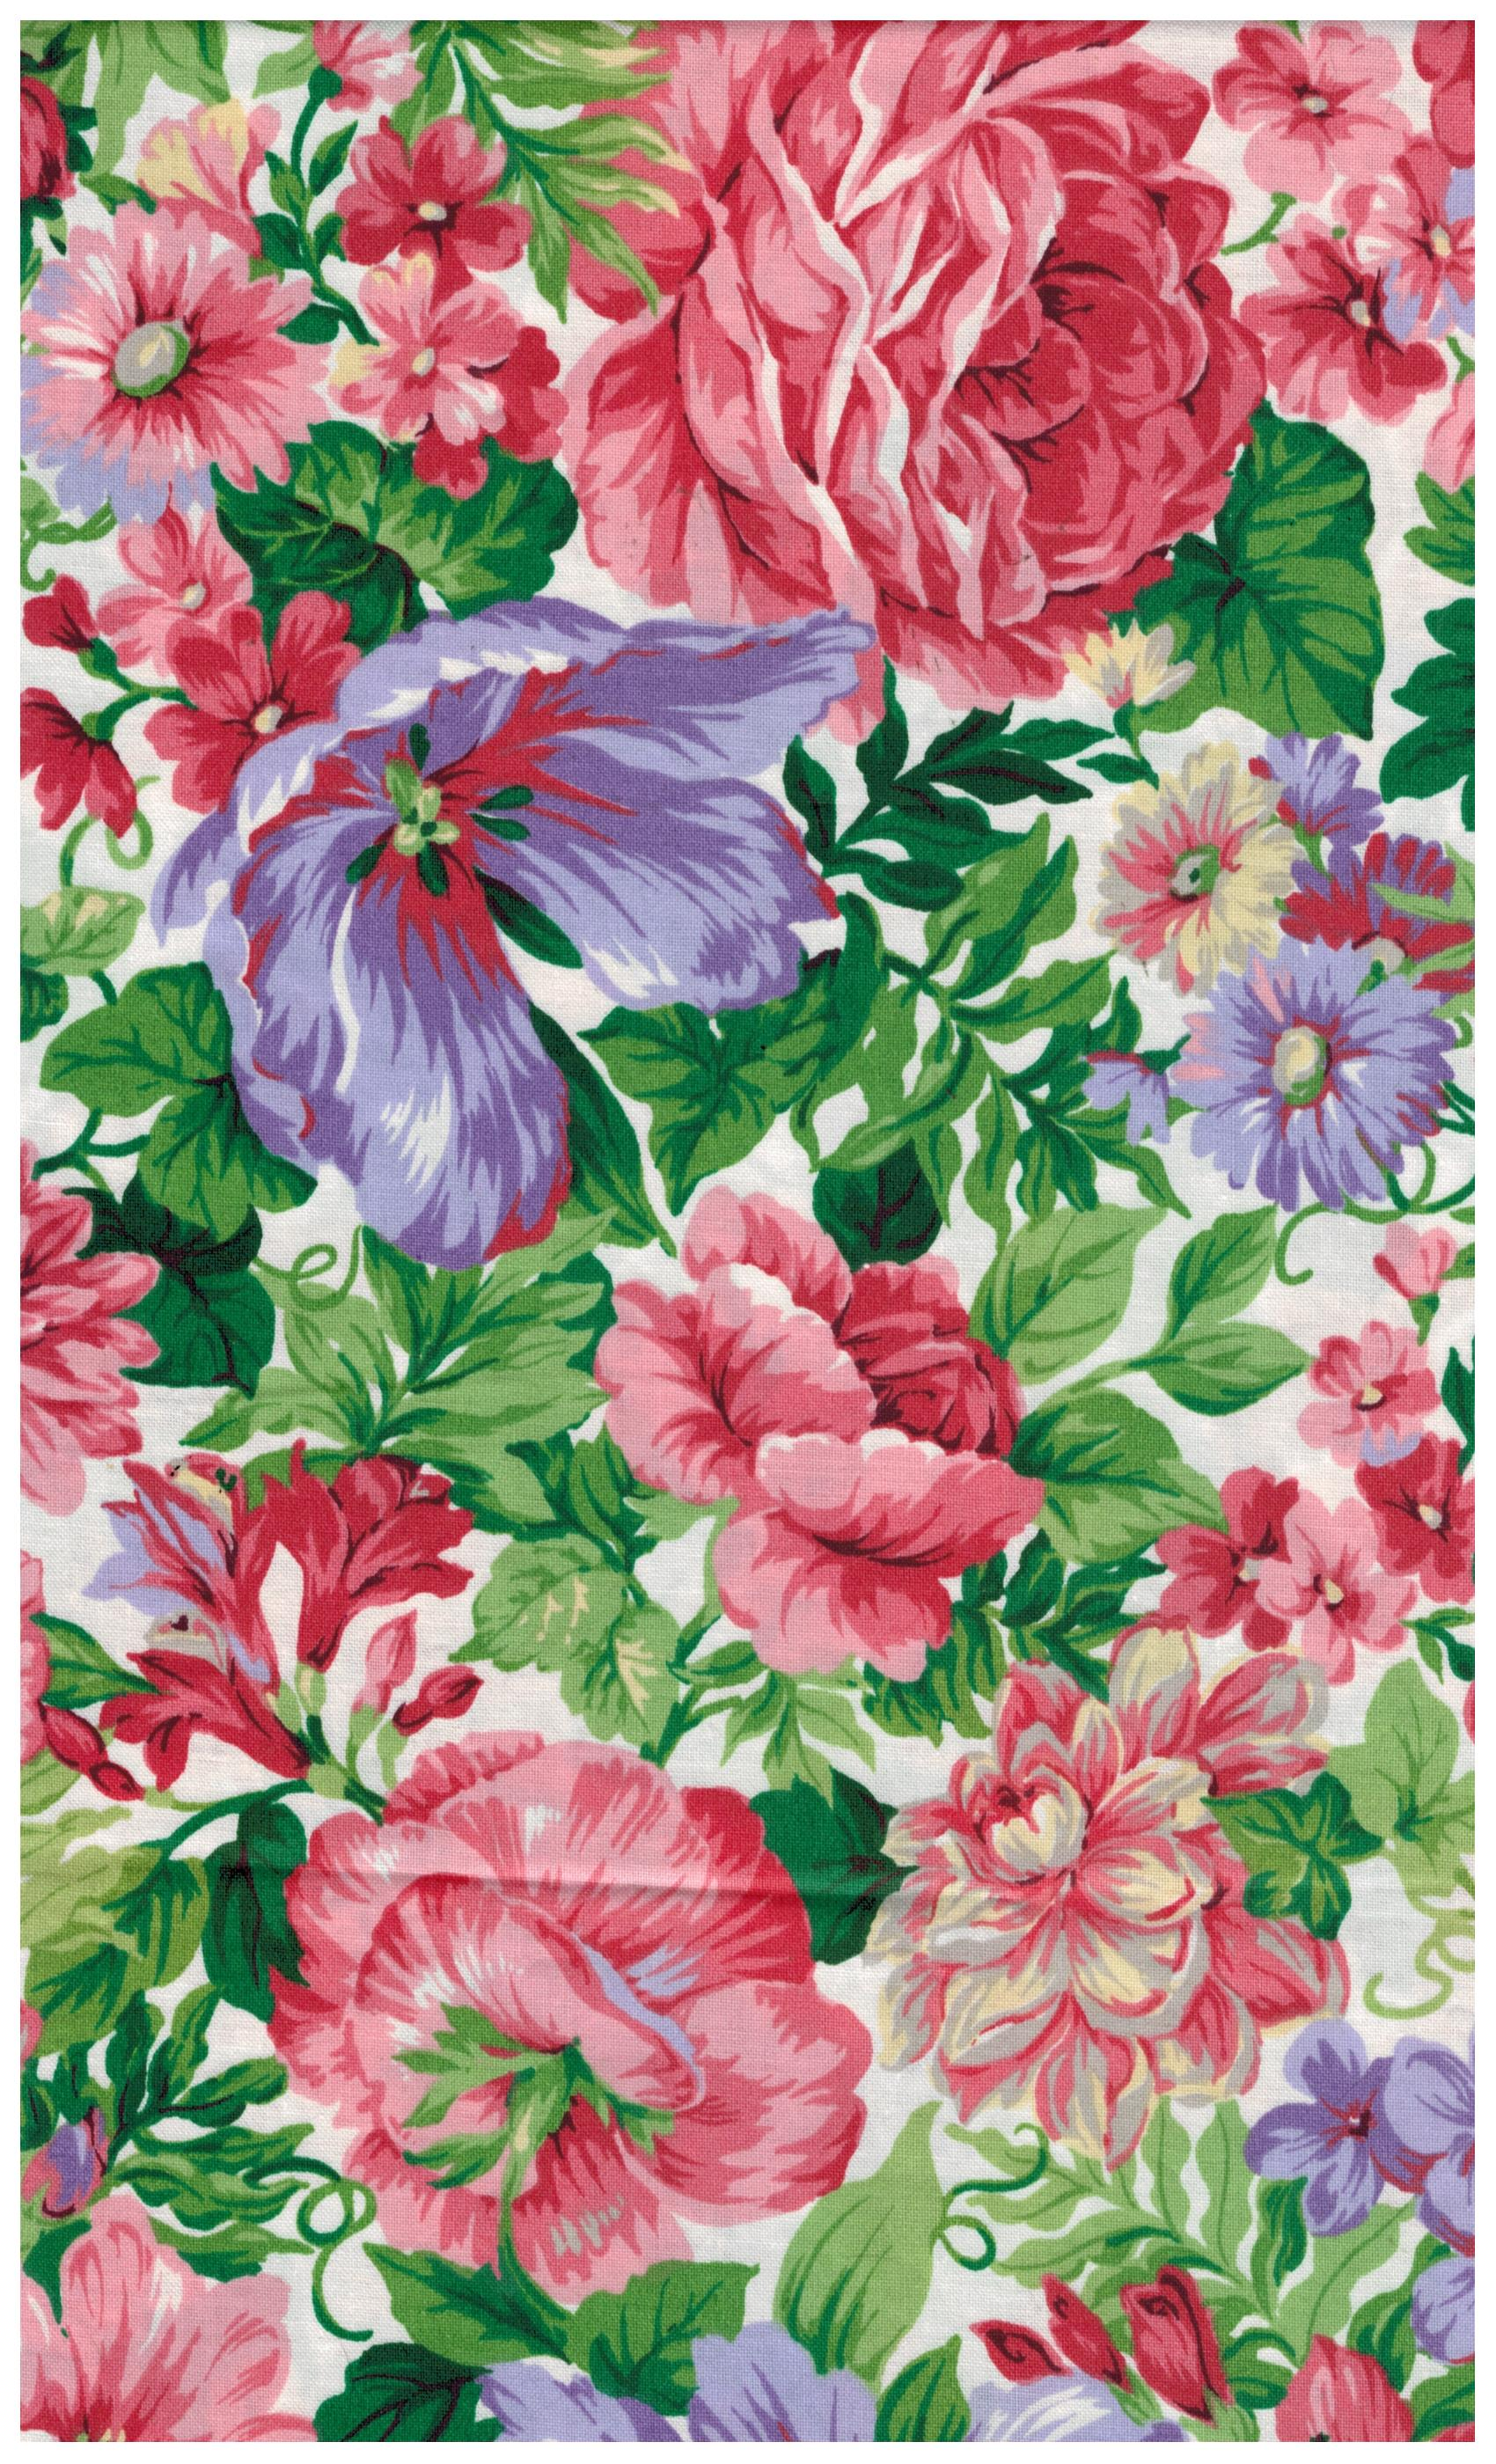 Vip Fabrics Polished Cotton Floral Print Cranston